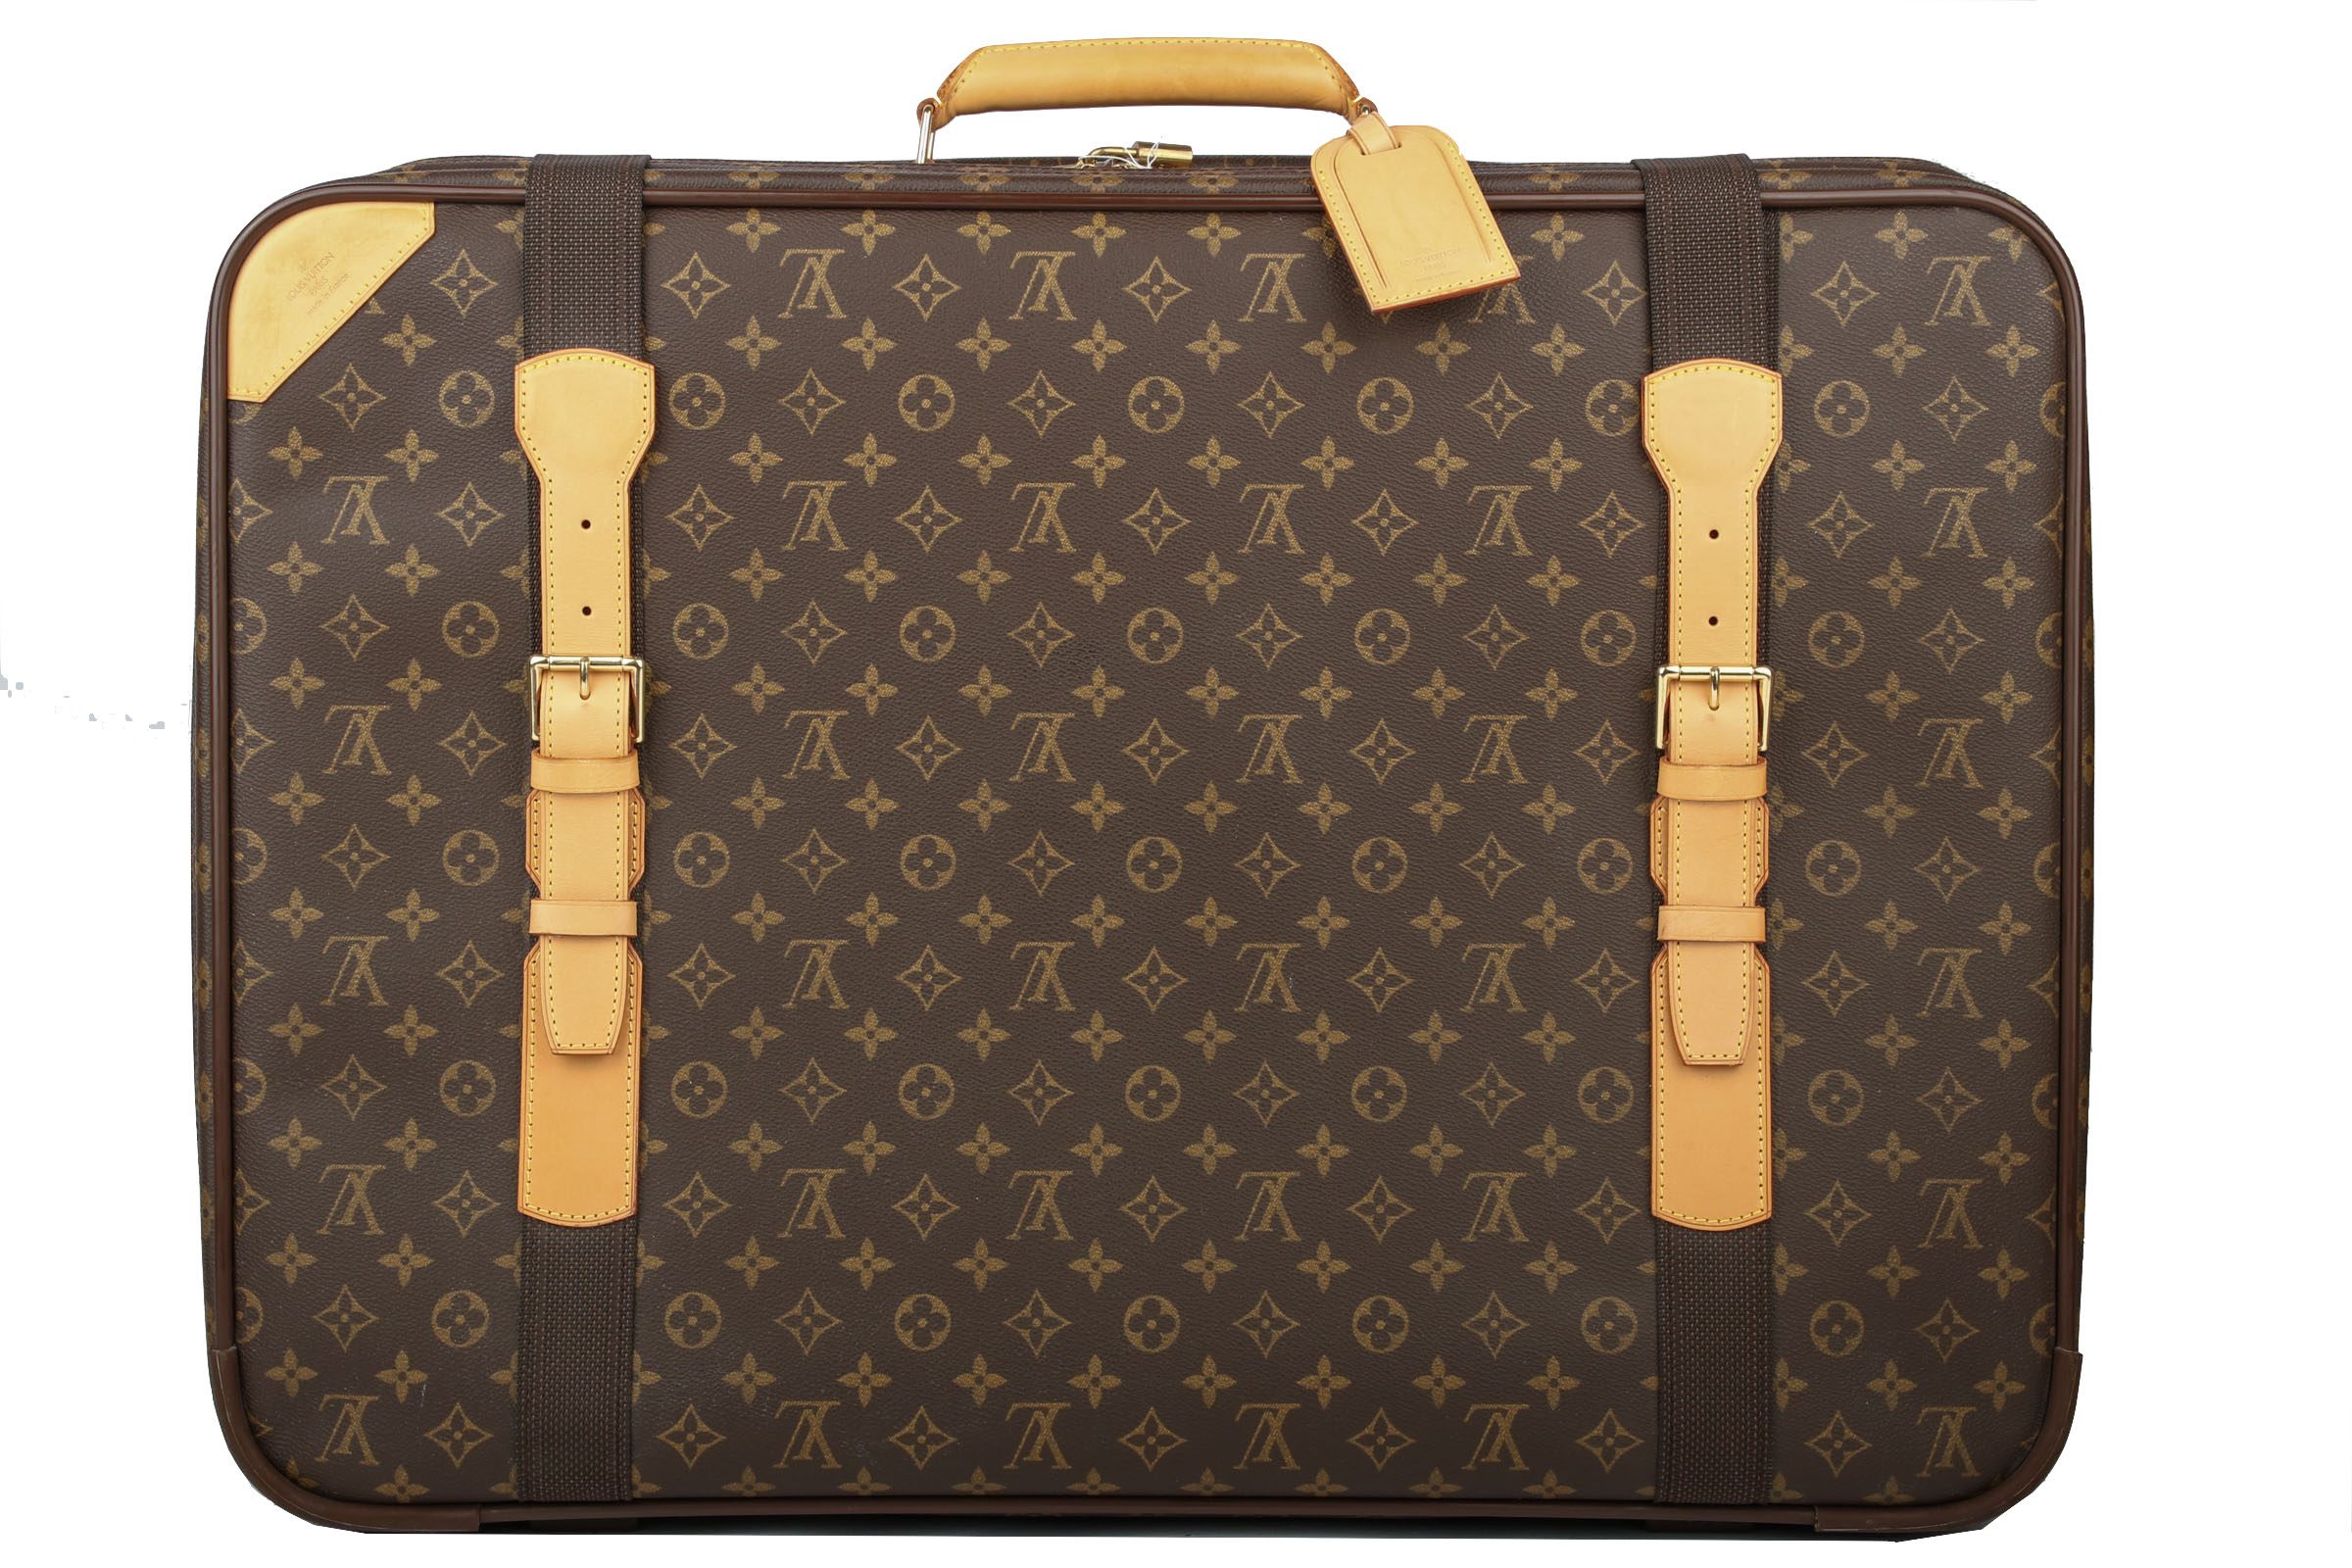 c89b52dc63c25 Louis Vuitton Satellite 65 Monogram Canvas